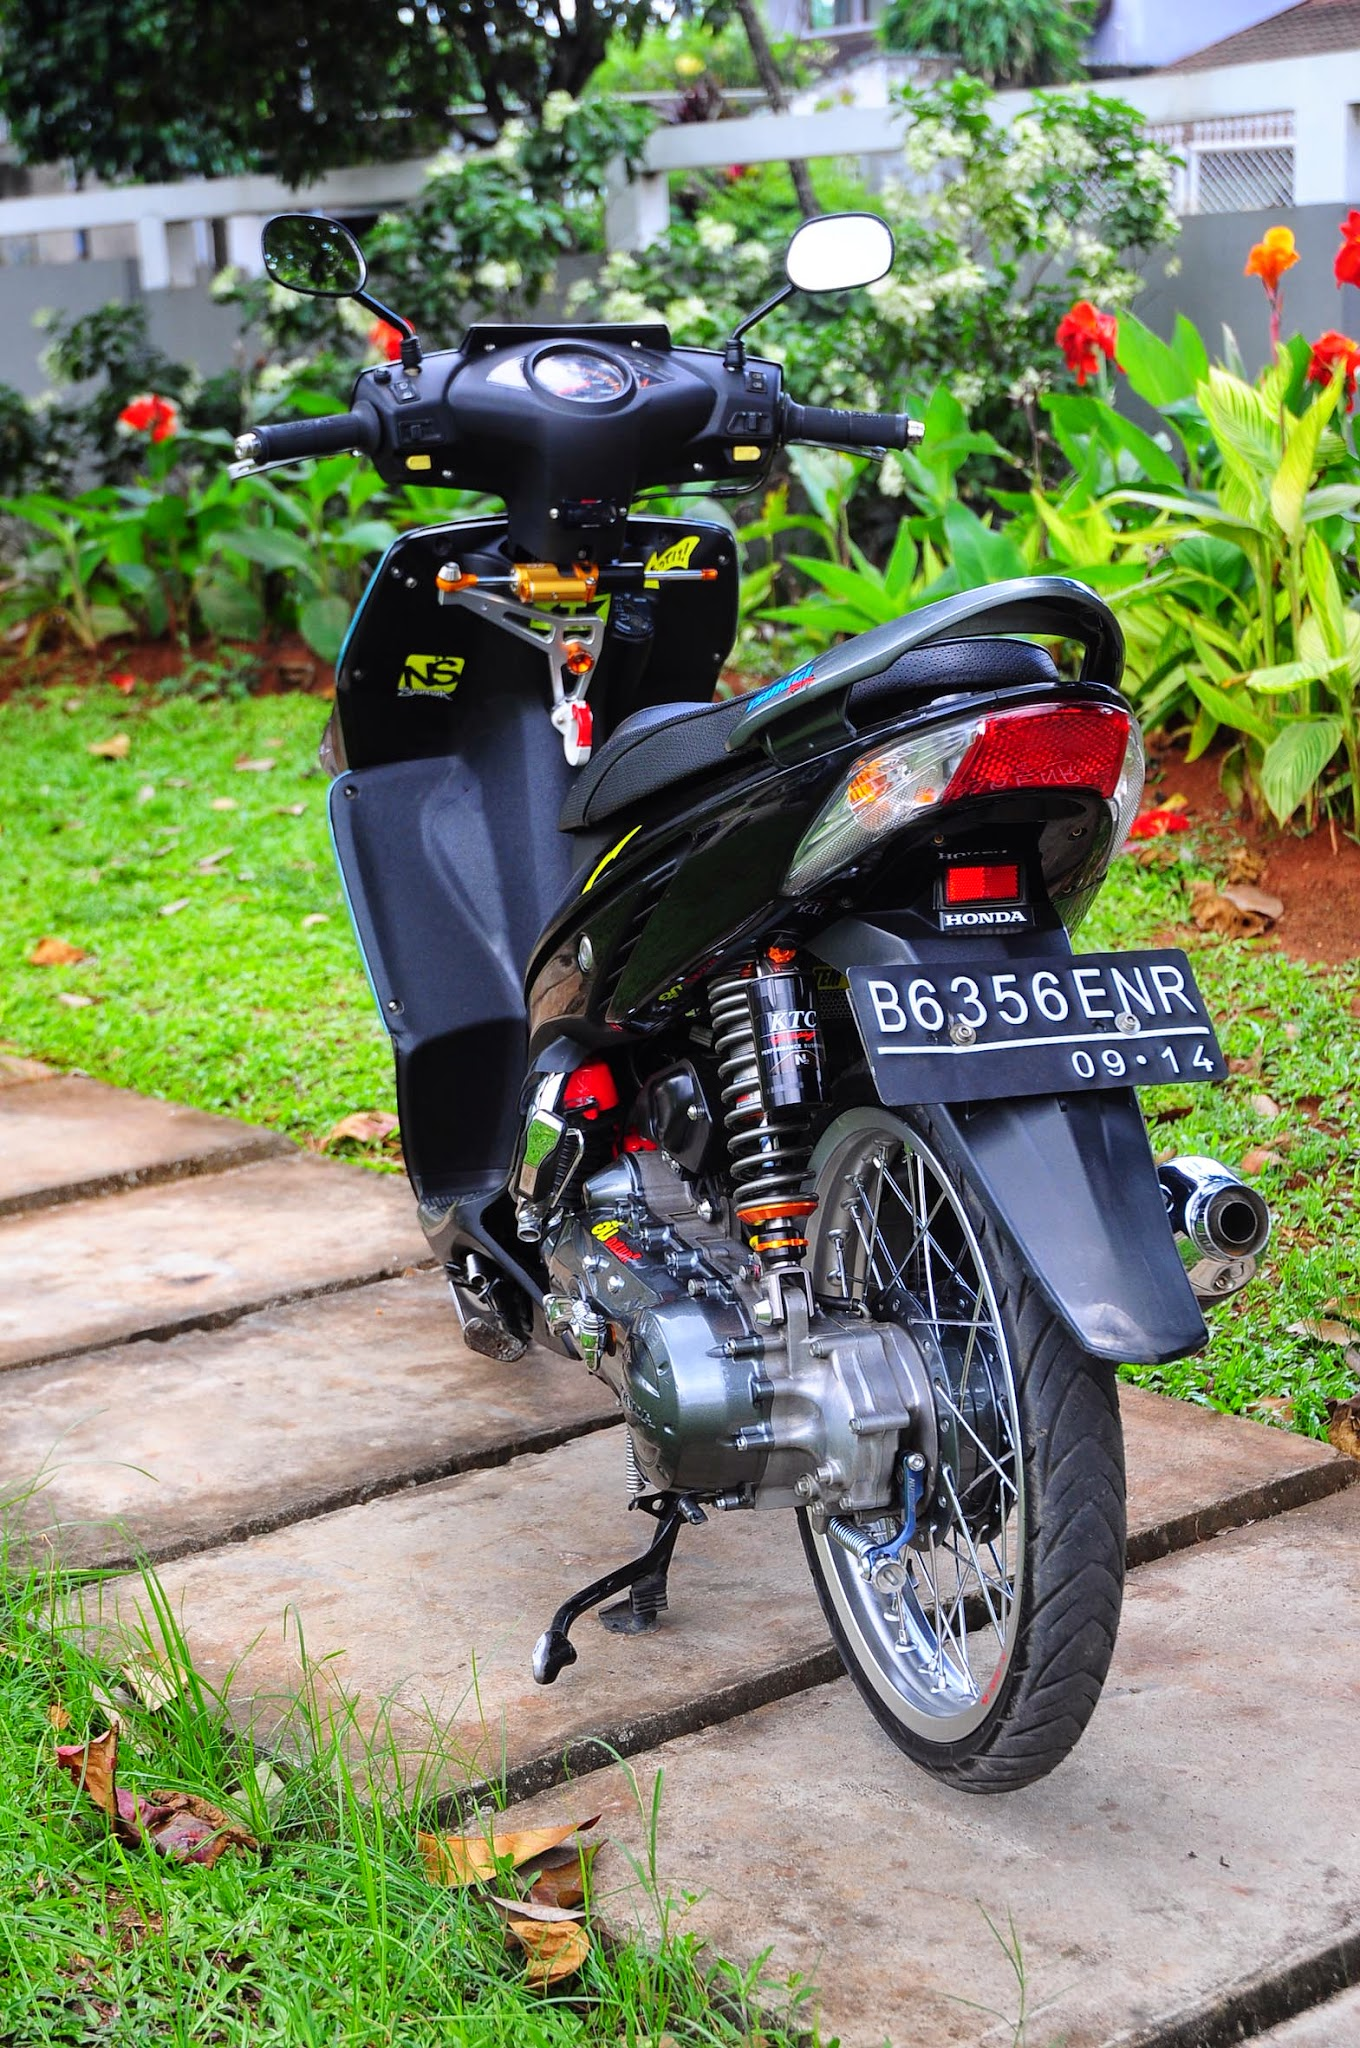 82 Modifikasi Scoopy Thailook Kumpulan Modifikasi Motor Scoopy Terbaru